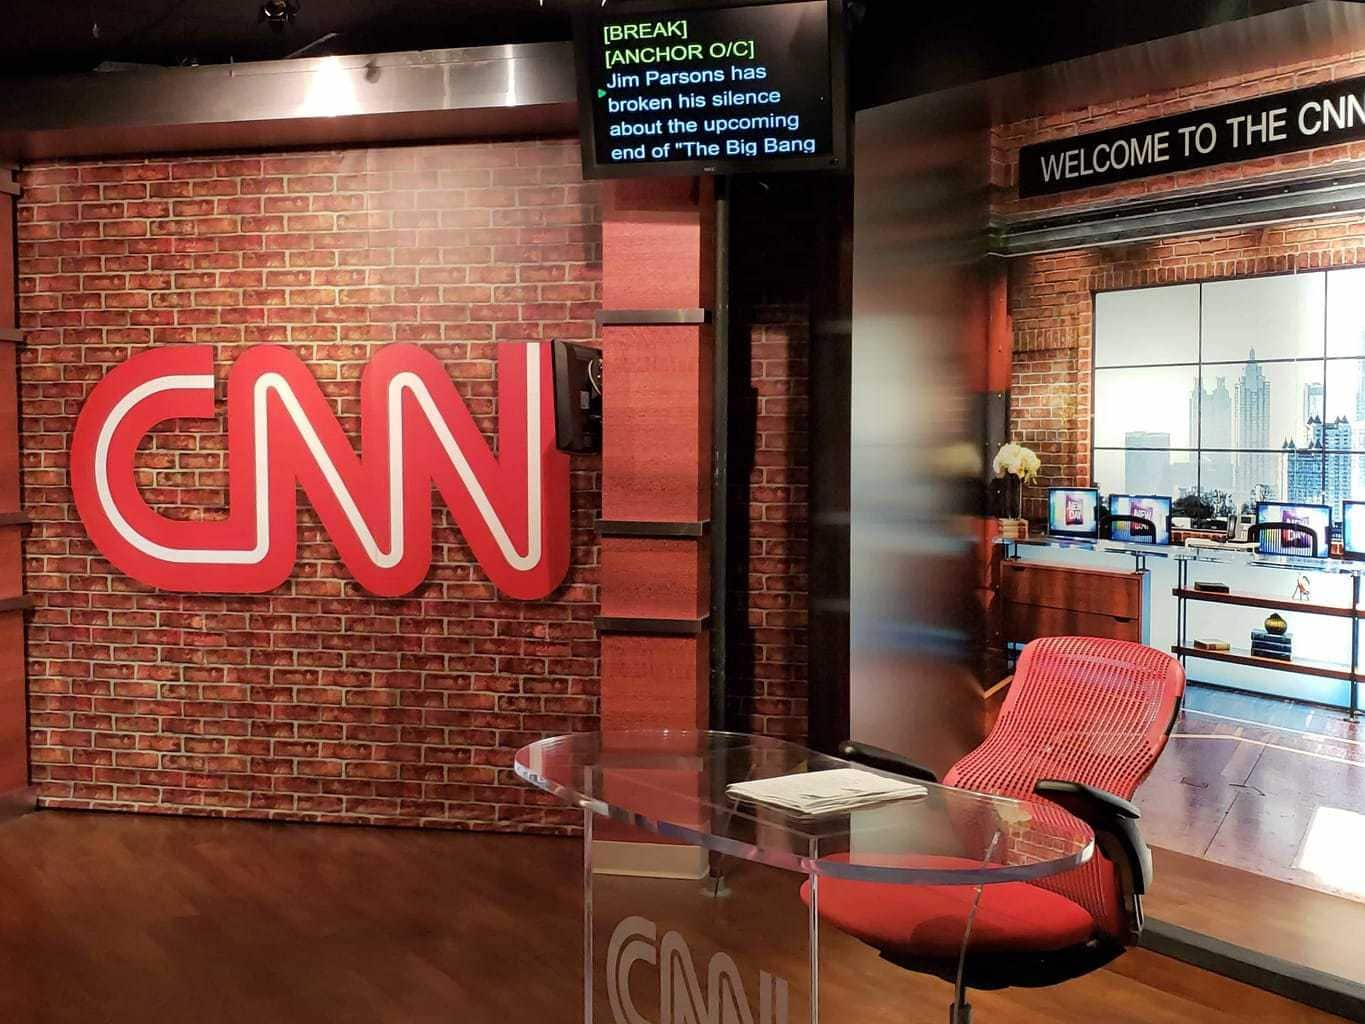 Cnn tour in Atlanta, atlanta bucket list, things to do in atlanta